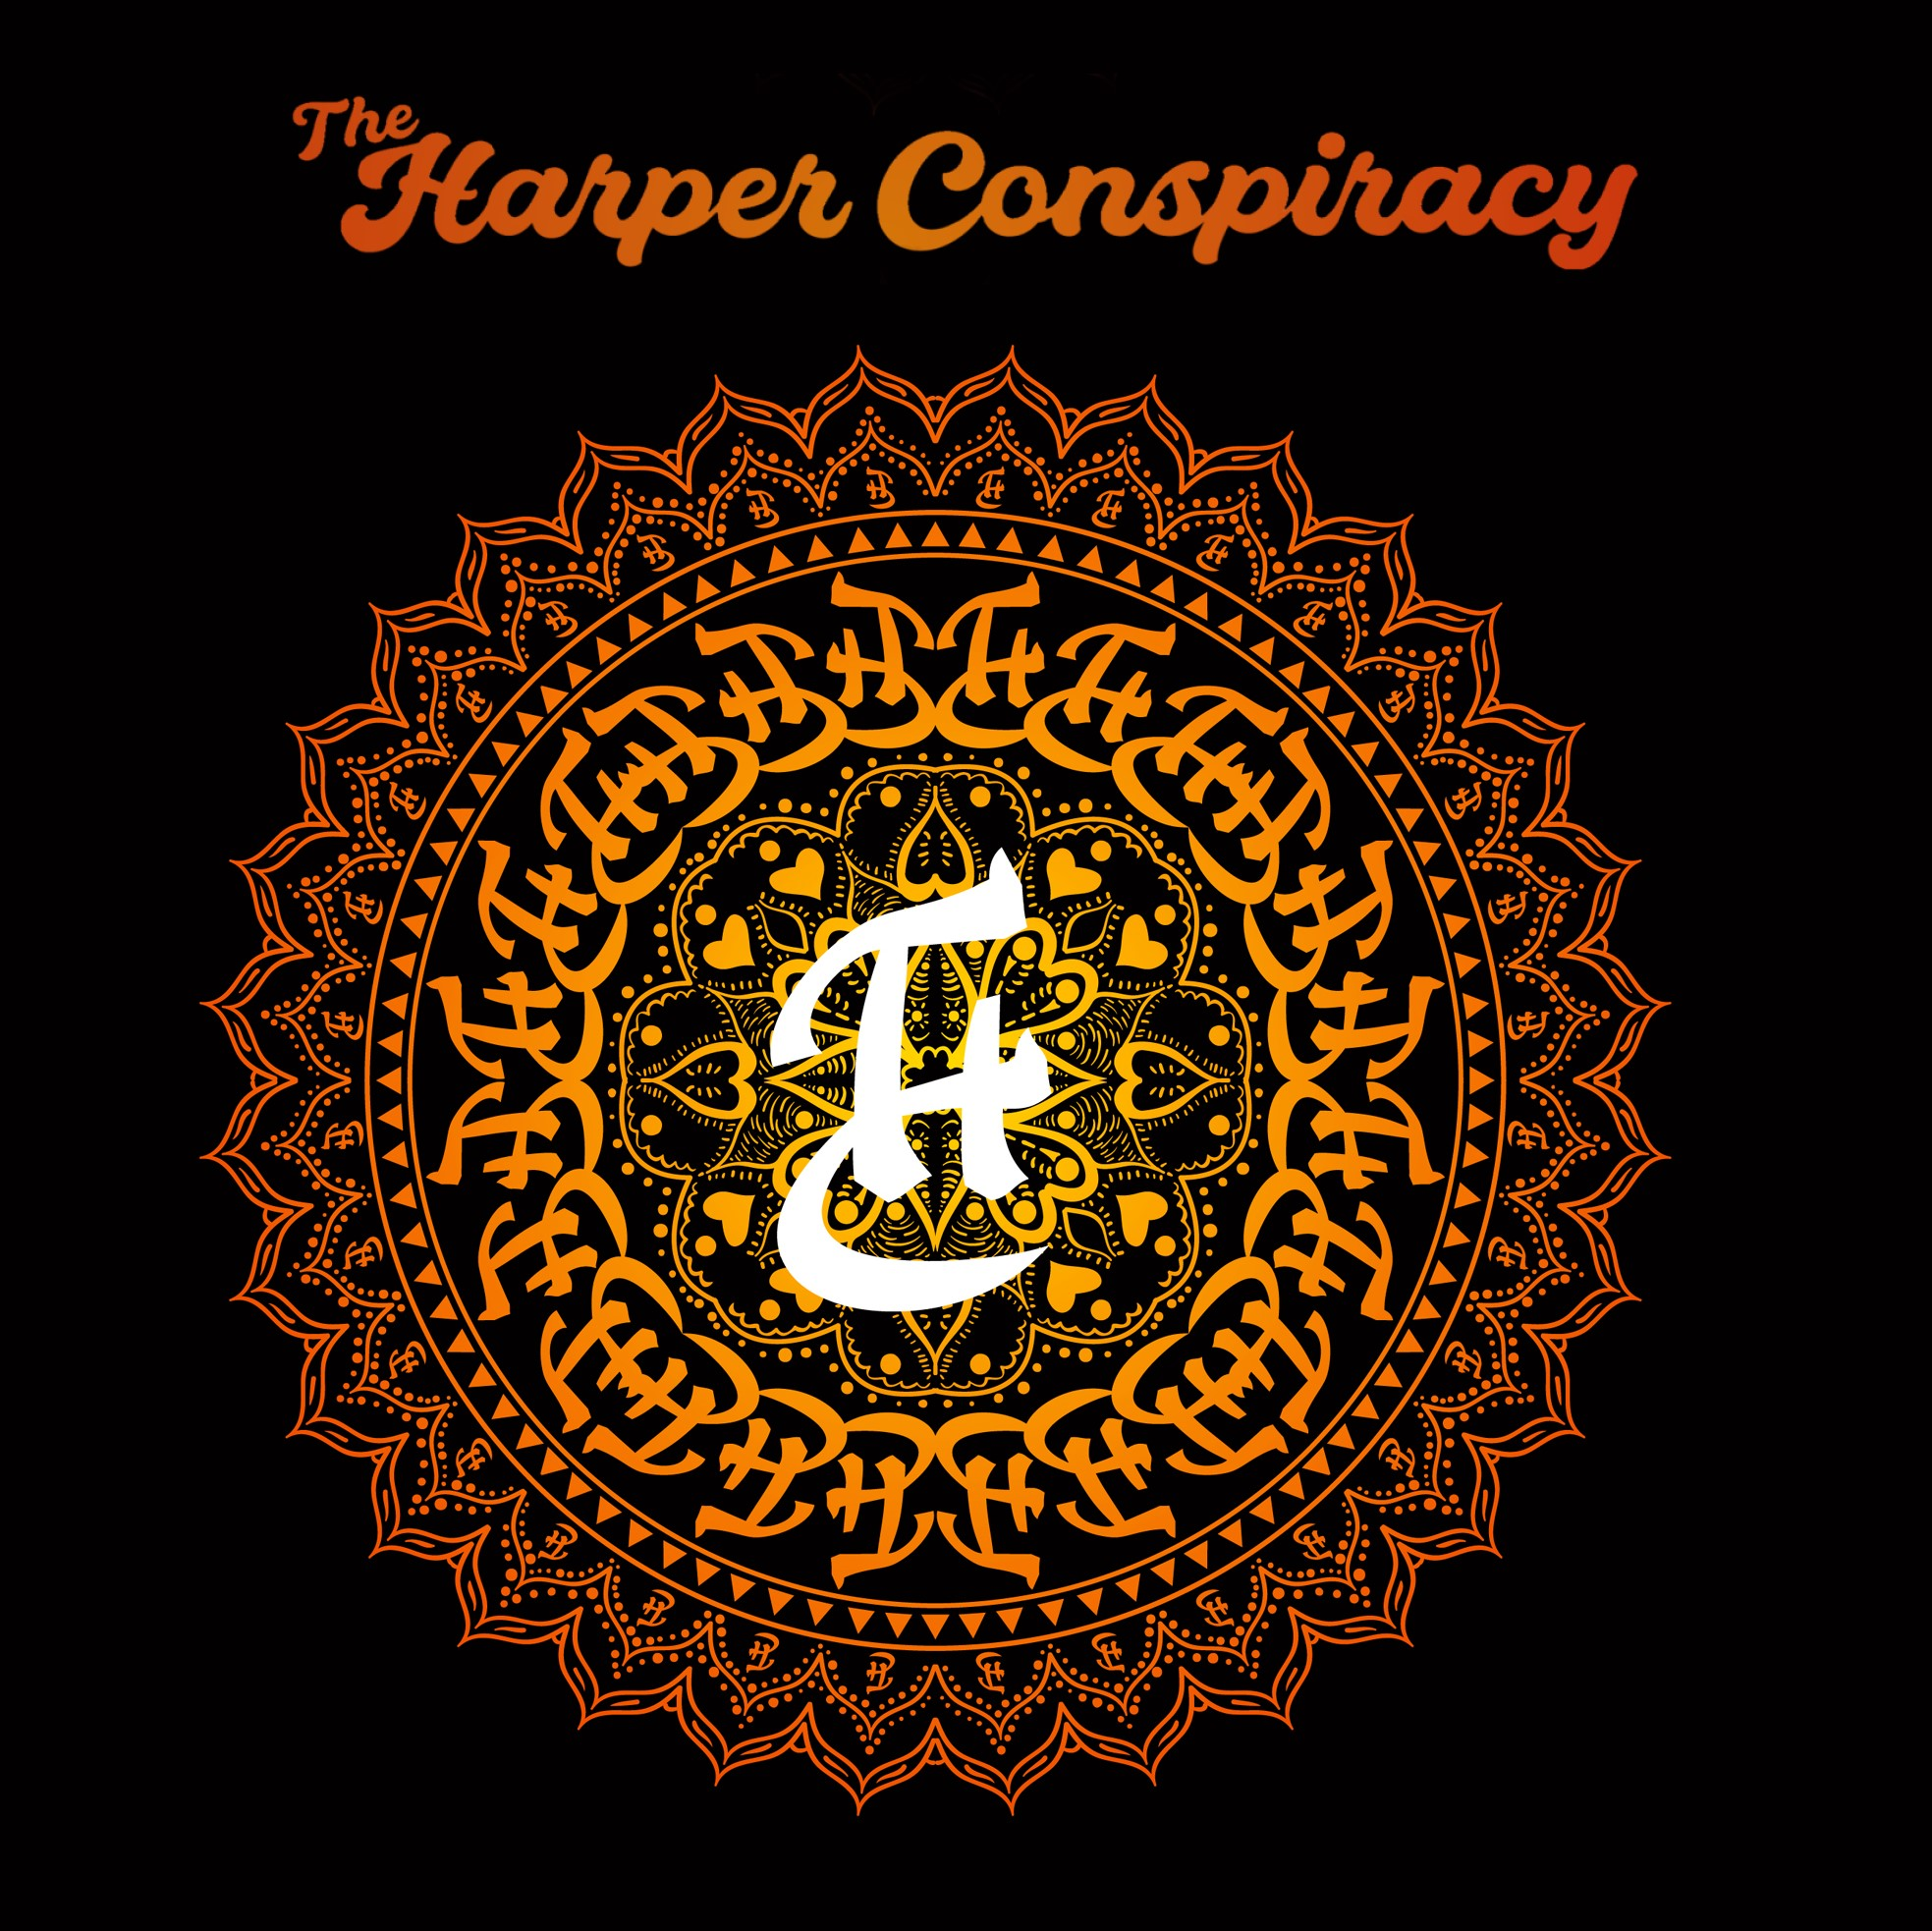 Sonic love bursting from lyric driven indie rock to fresh and funky vintage vibes. The Harper Conspiracy & The Fully Realized are a package deal!